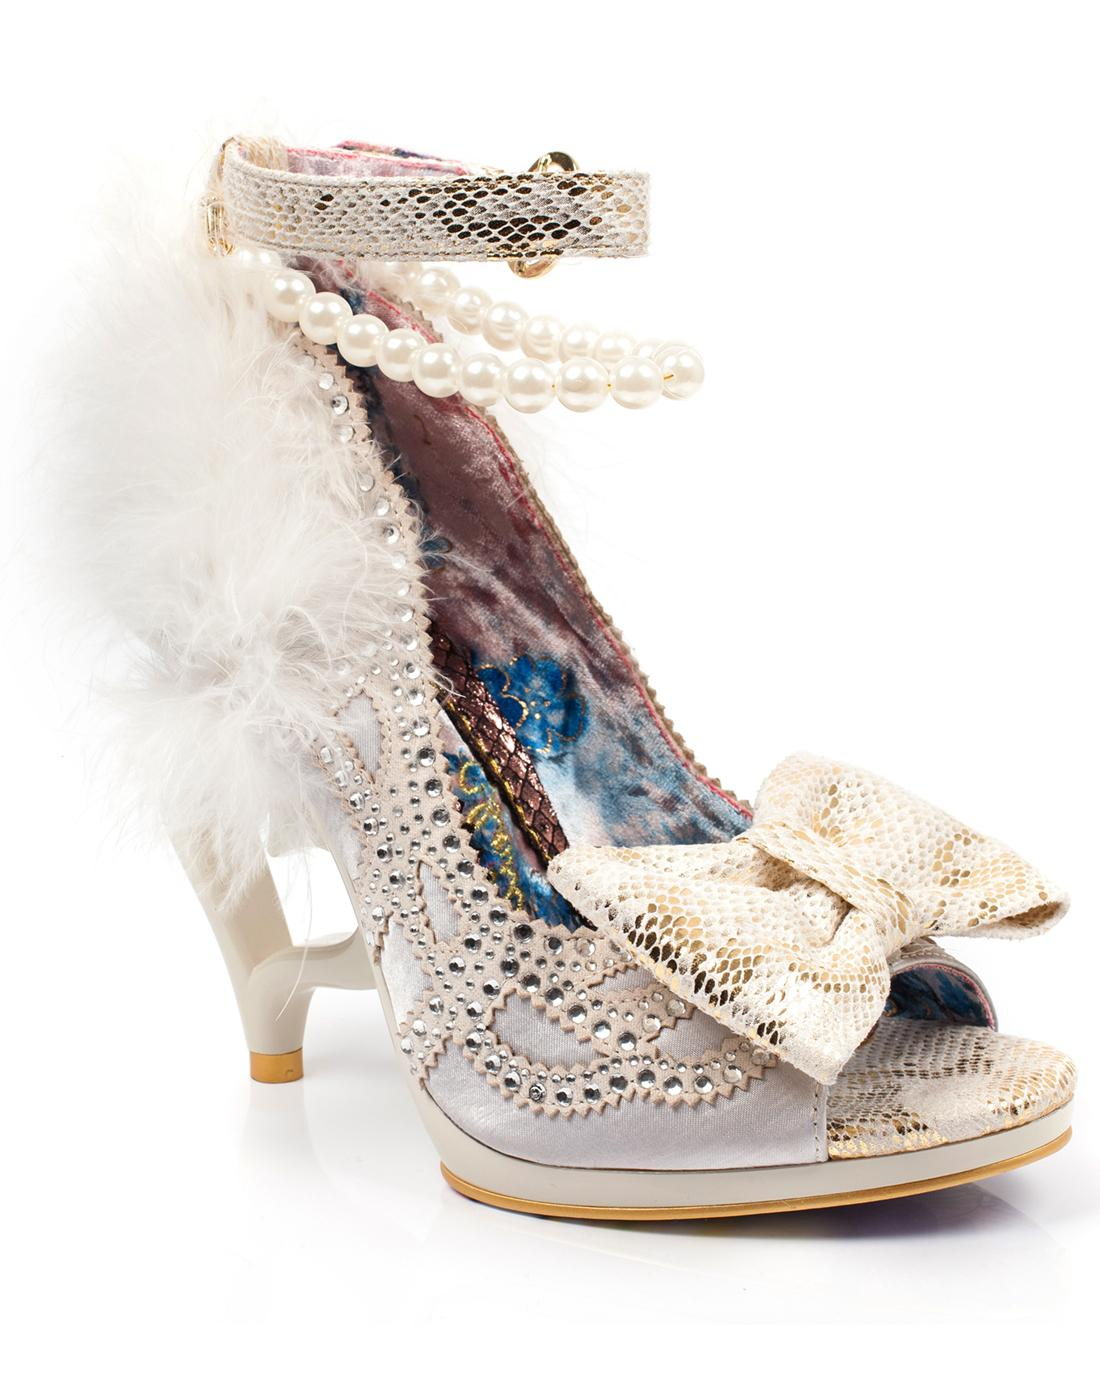 Tingle Tastic IRREGULAR CHOICE Fluffy Heart Heels